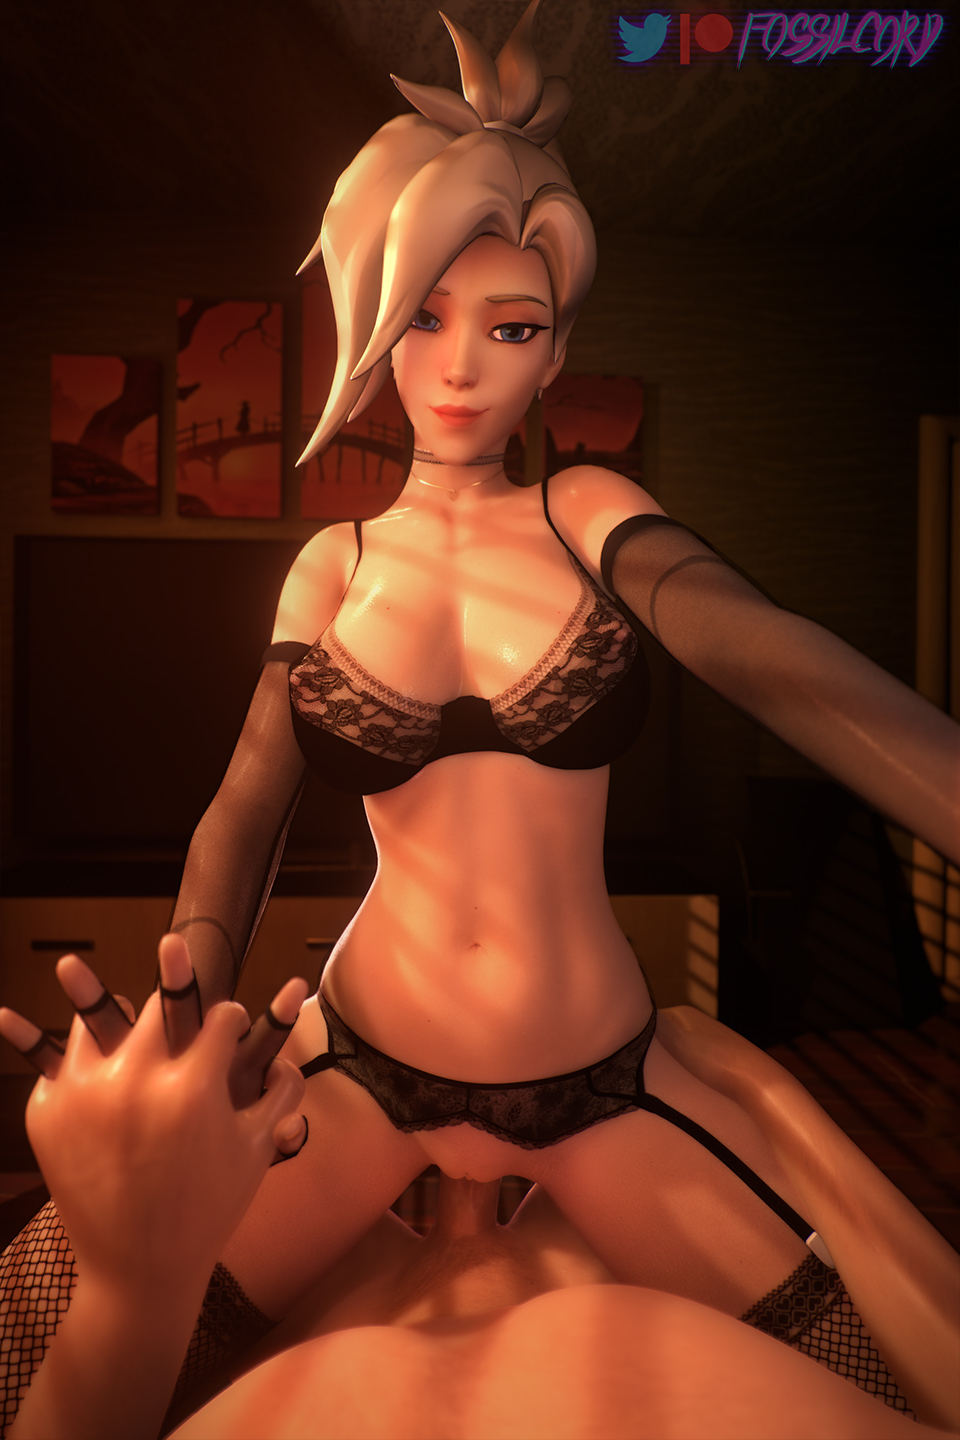 overwatch-game-porn-–-tied-hair,-pussy,-smile,-cowgirl-position.